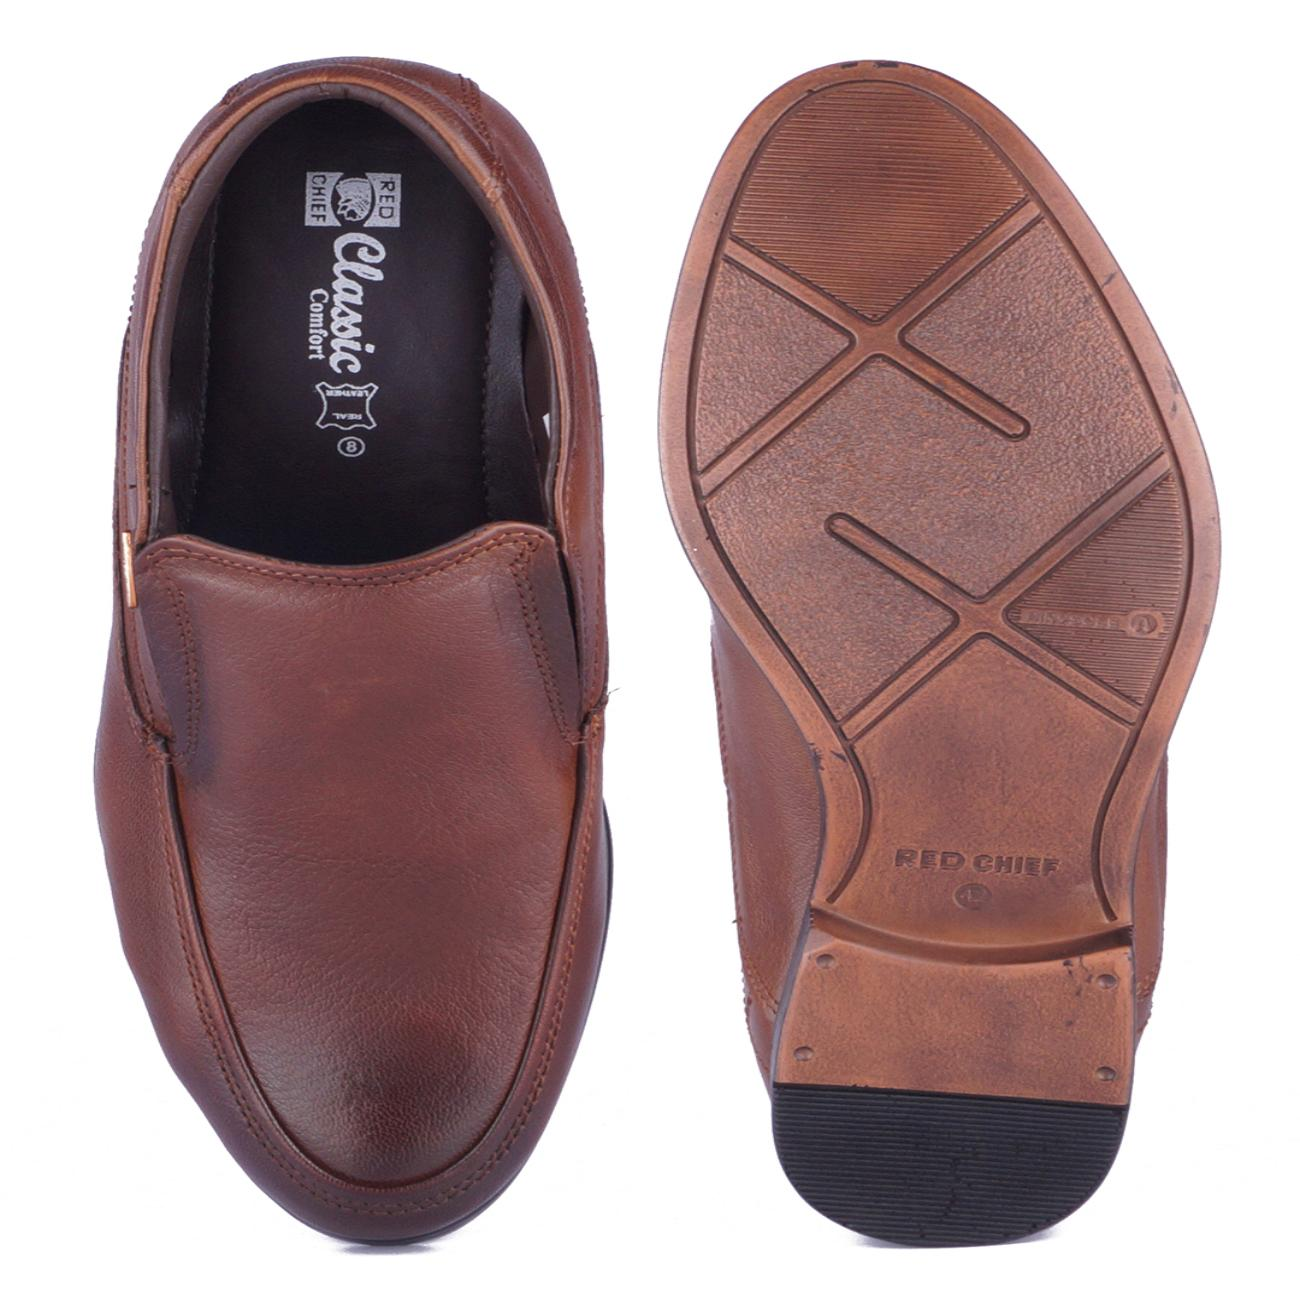 tan leather slip-on formal shoes top view